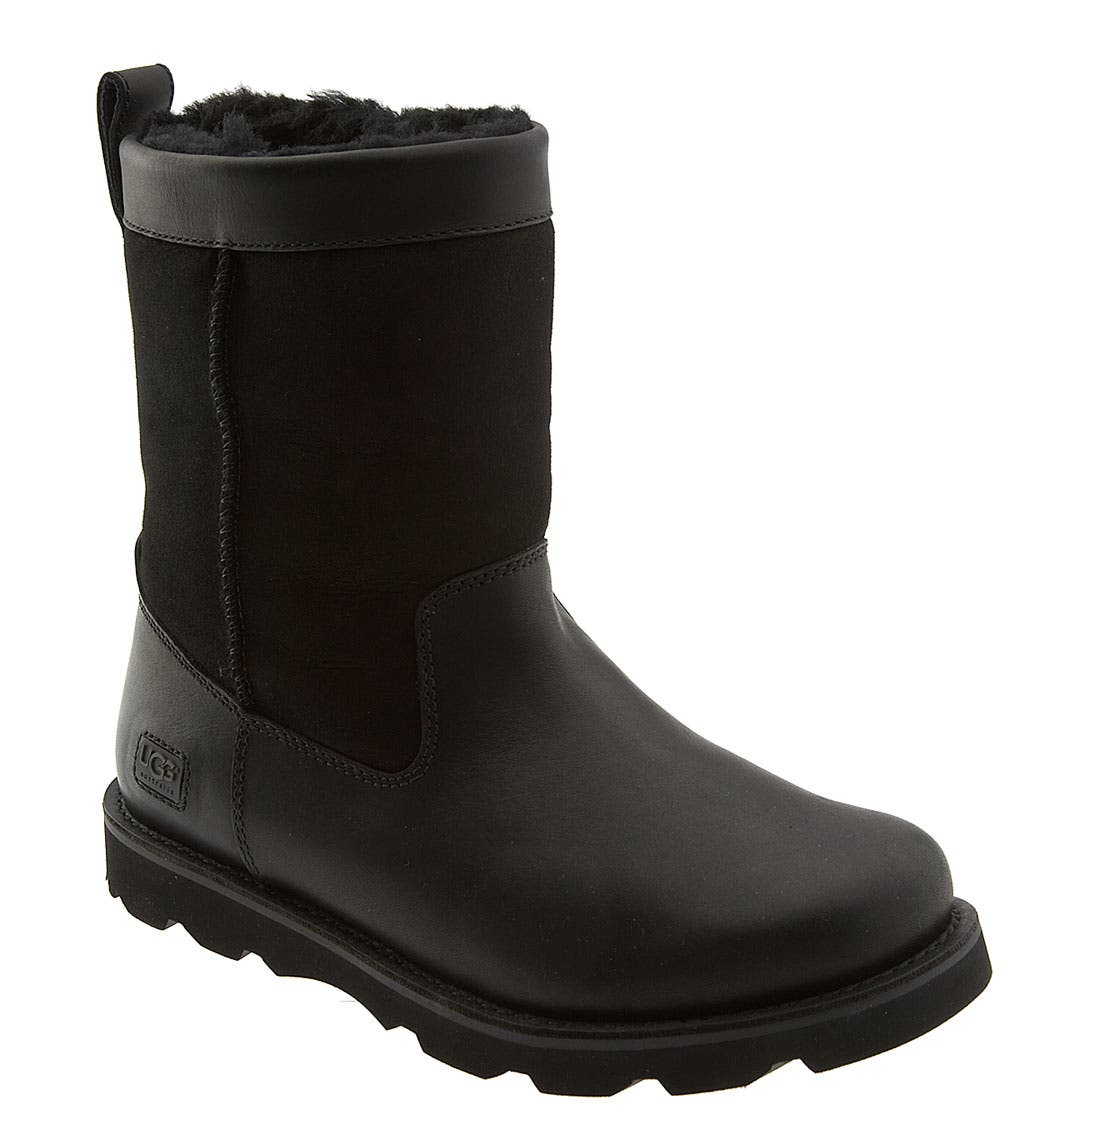 UGG<SUP>®</SUP> 'Wrangell' Boot, Main, color, 007